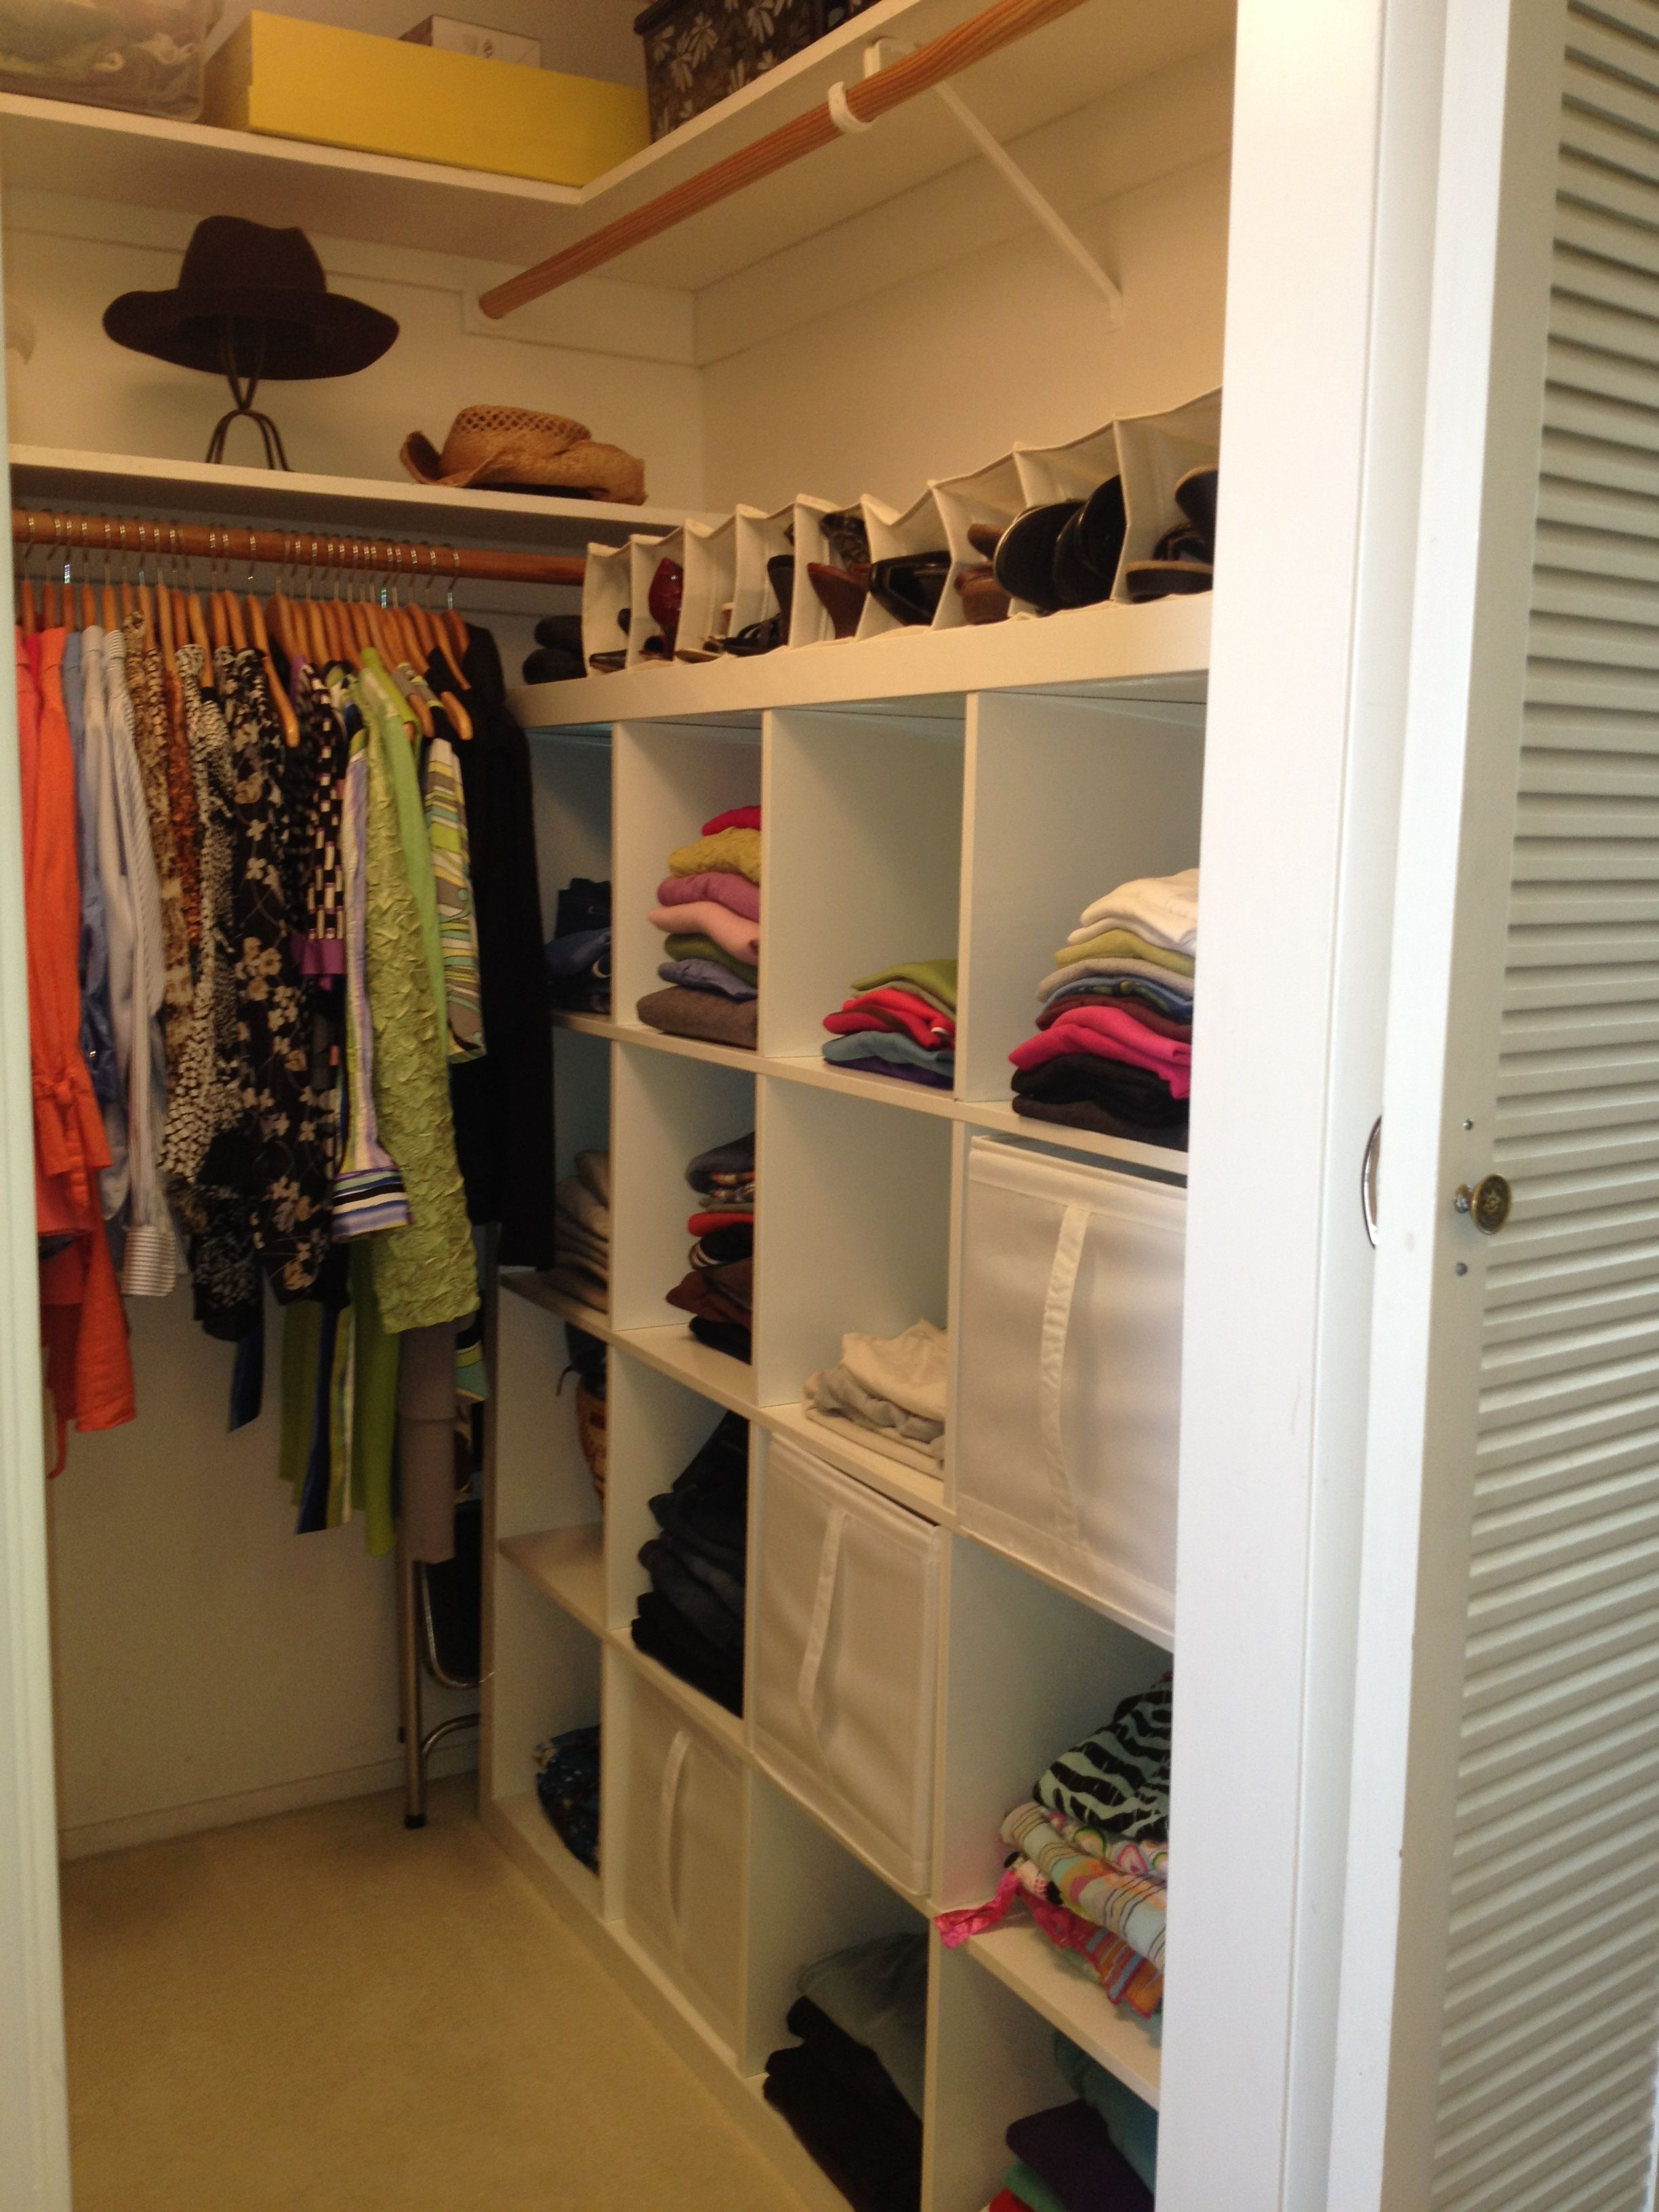 Simple small closet organization tips smart home decorating ideas - Furniture Walk In Closets Ideas Small Organizer Software Tool Organization Storage Master Door How To Closet